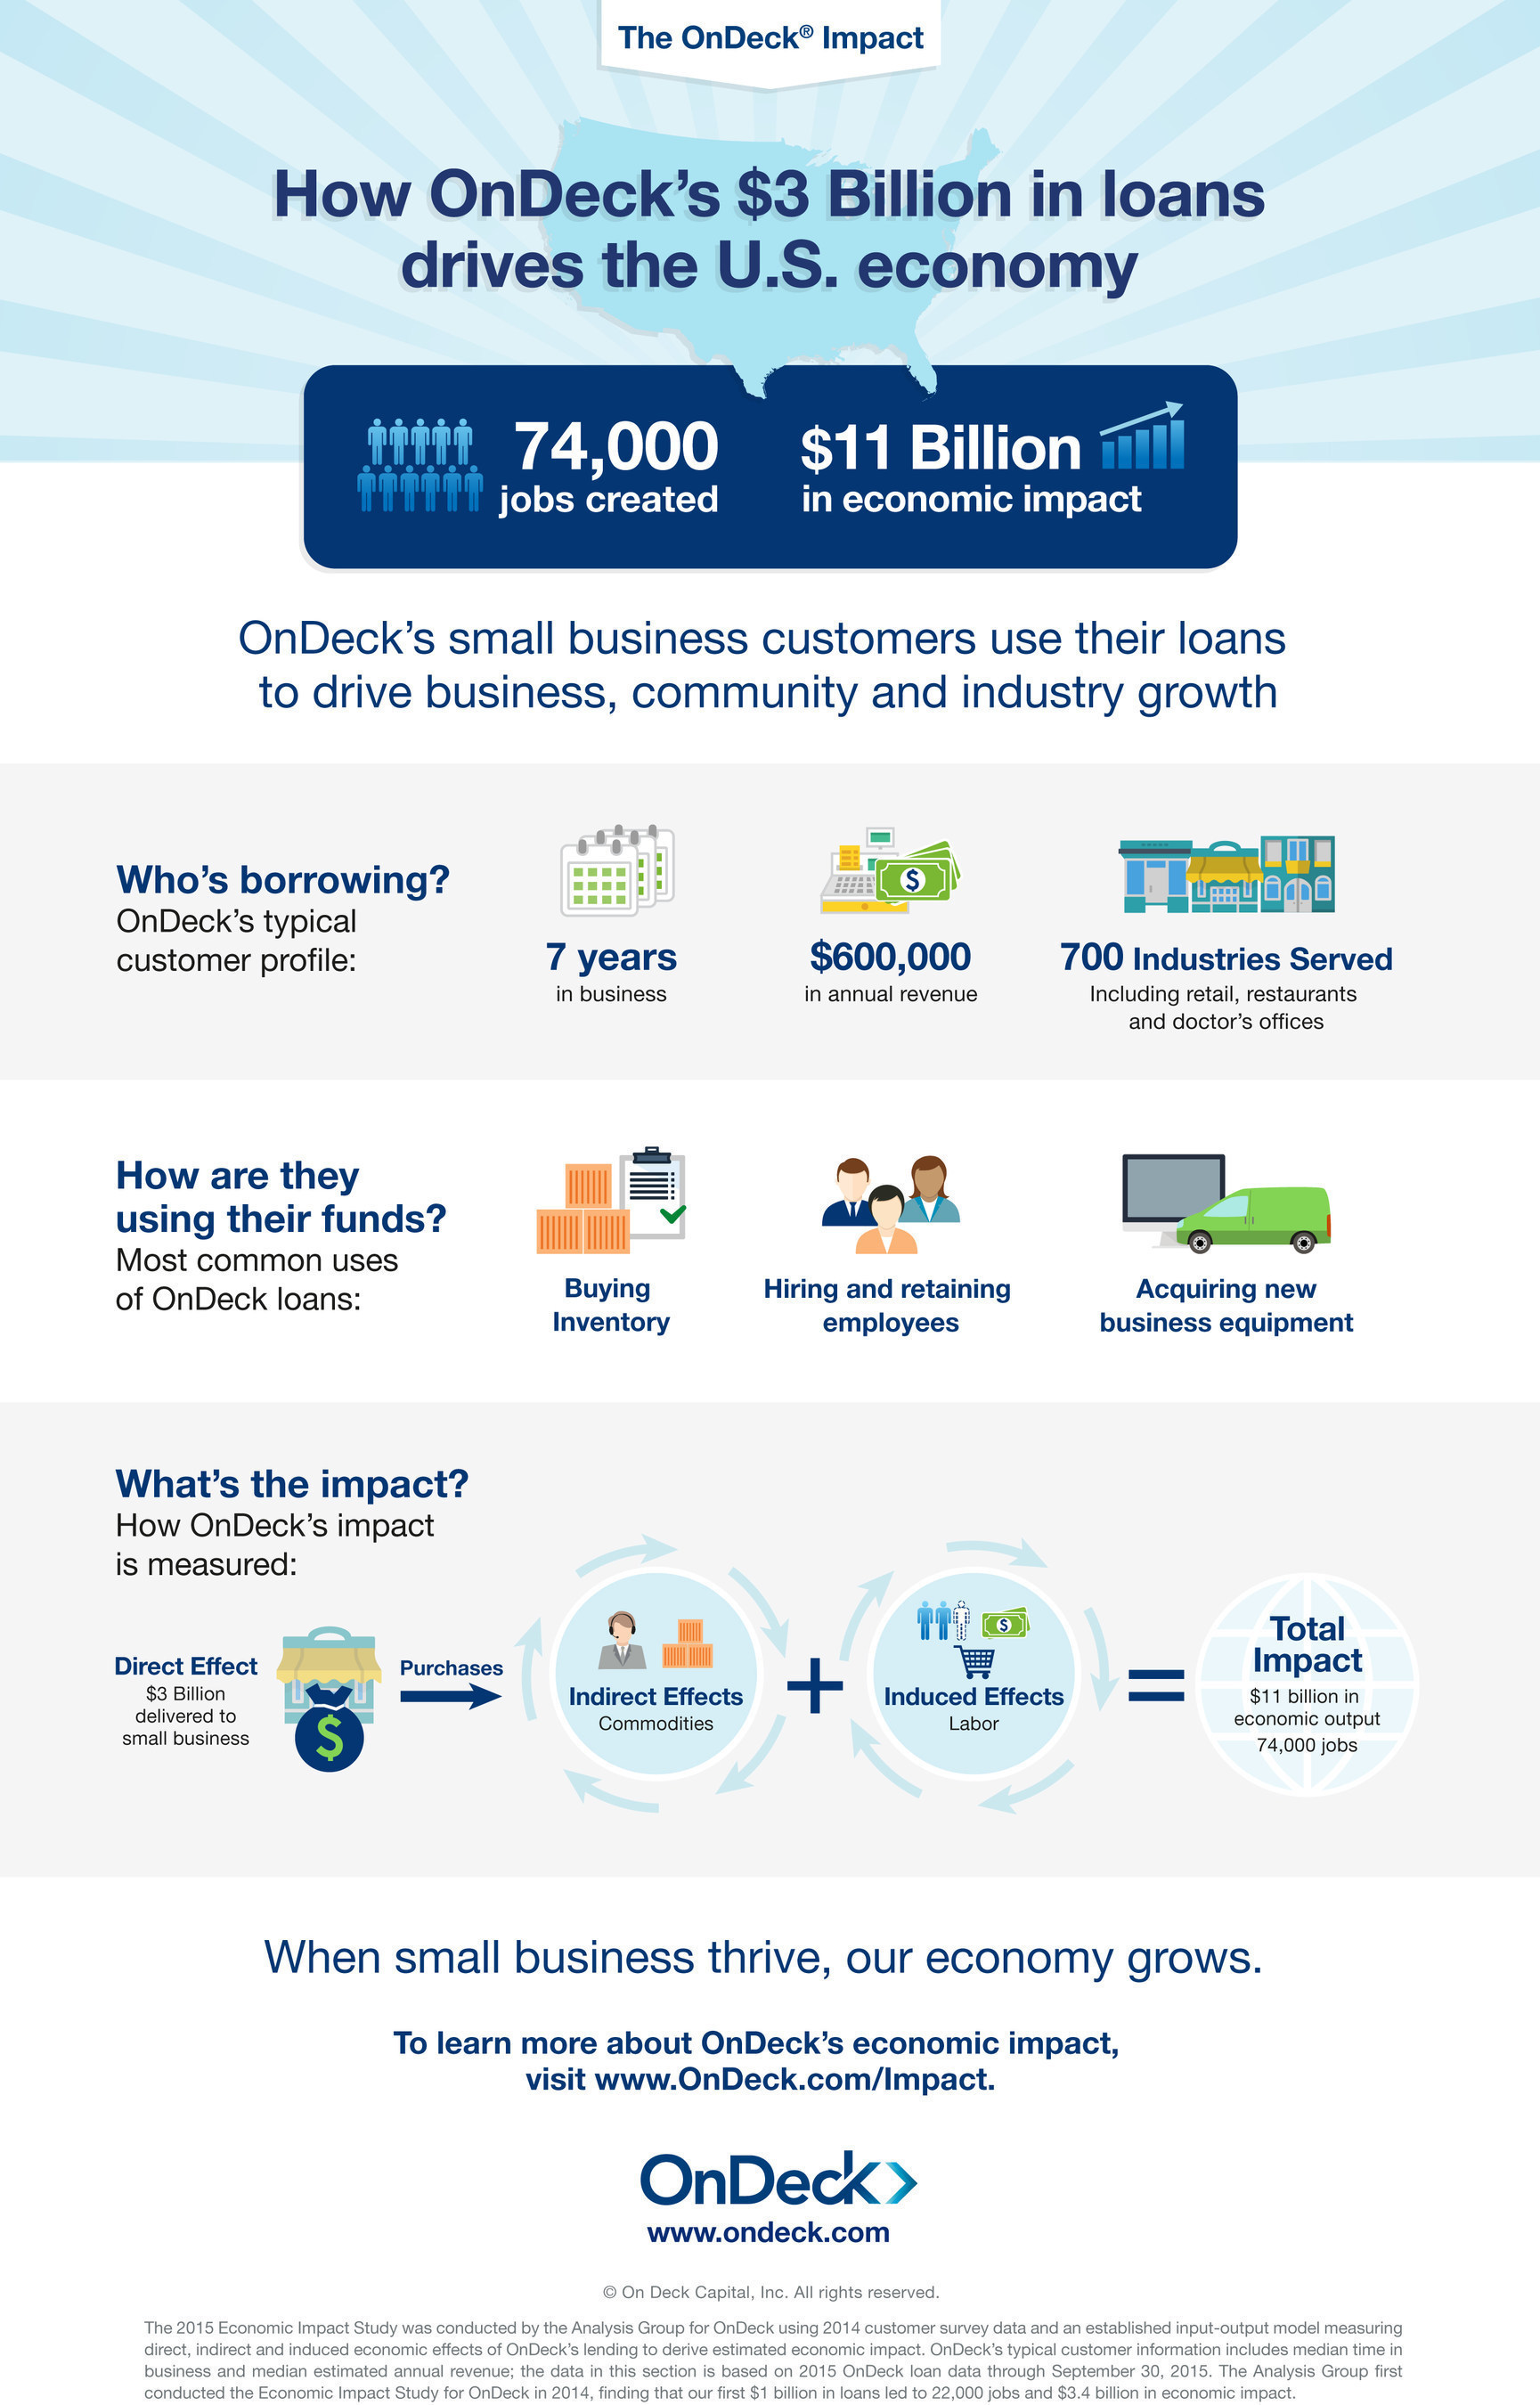 OnDeck Generates Estimated $11 Billion in Economic Impact and 74,000 Jobs Nationwide. Learn more at ...